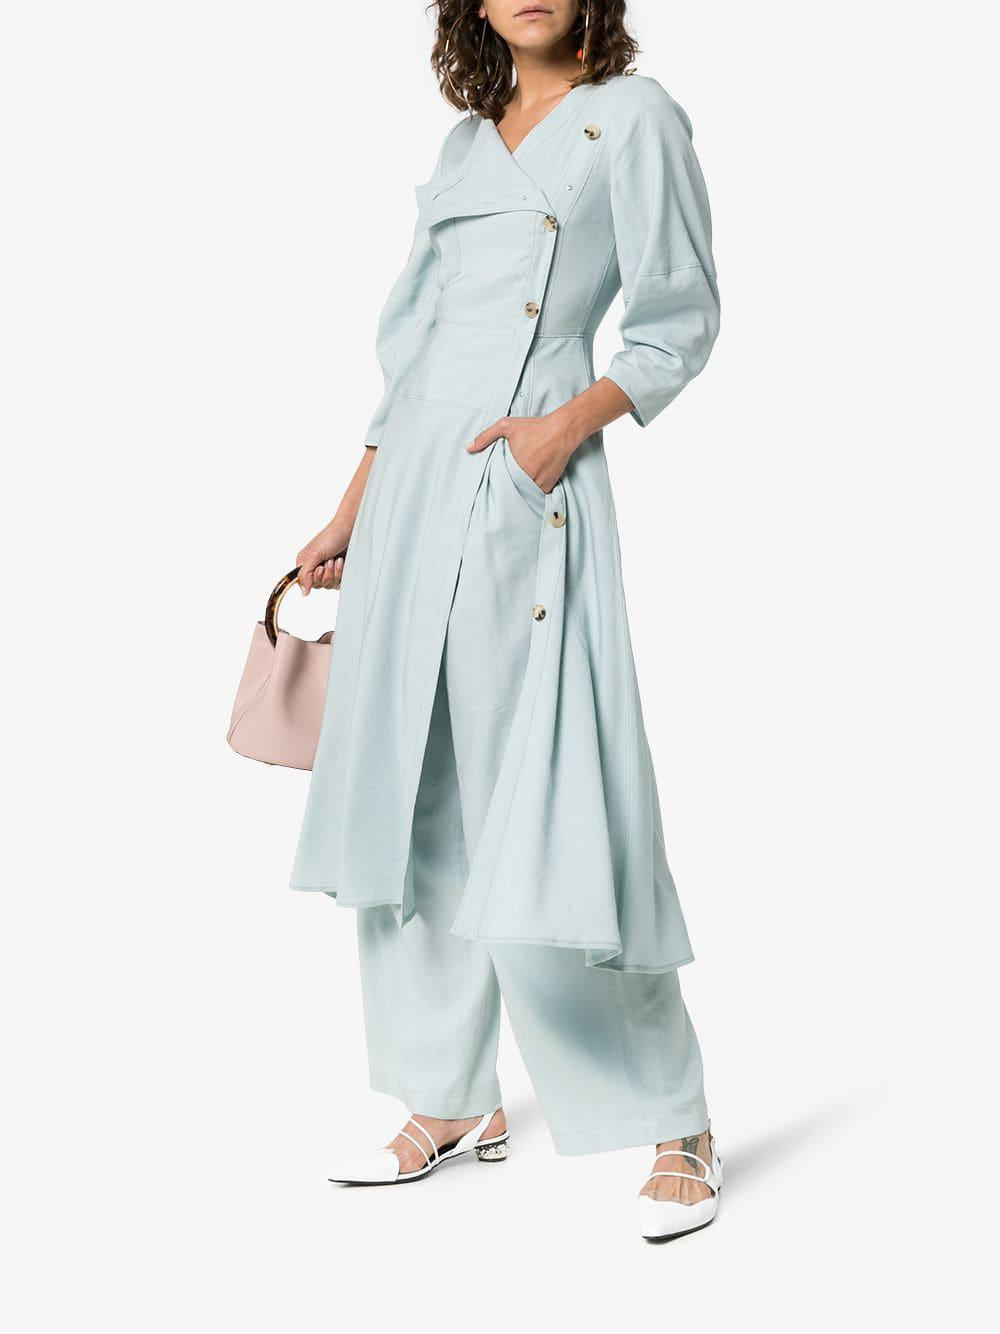 ab2ec589cfa Lyst - Rejina Pyo Button Down Linen Midi Dress in Blue - Save 3%